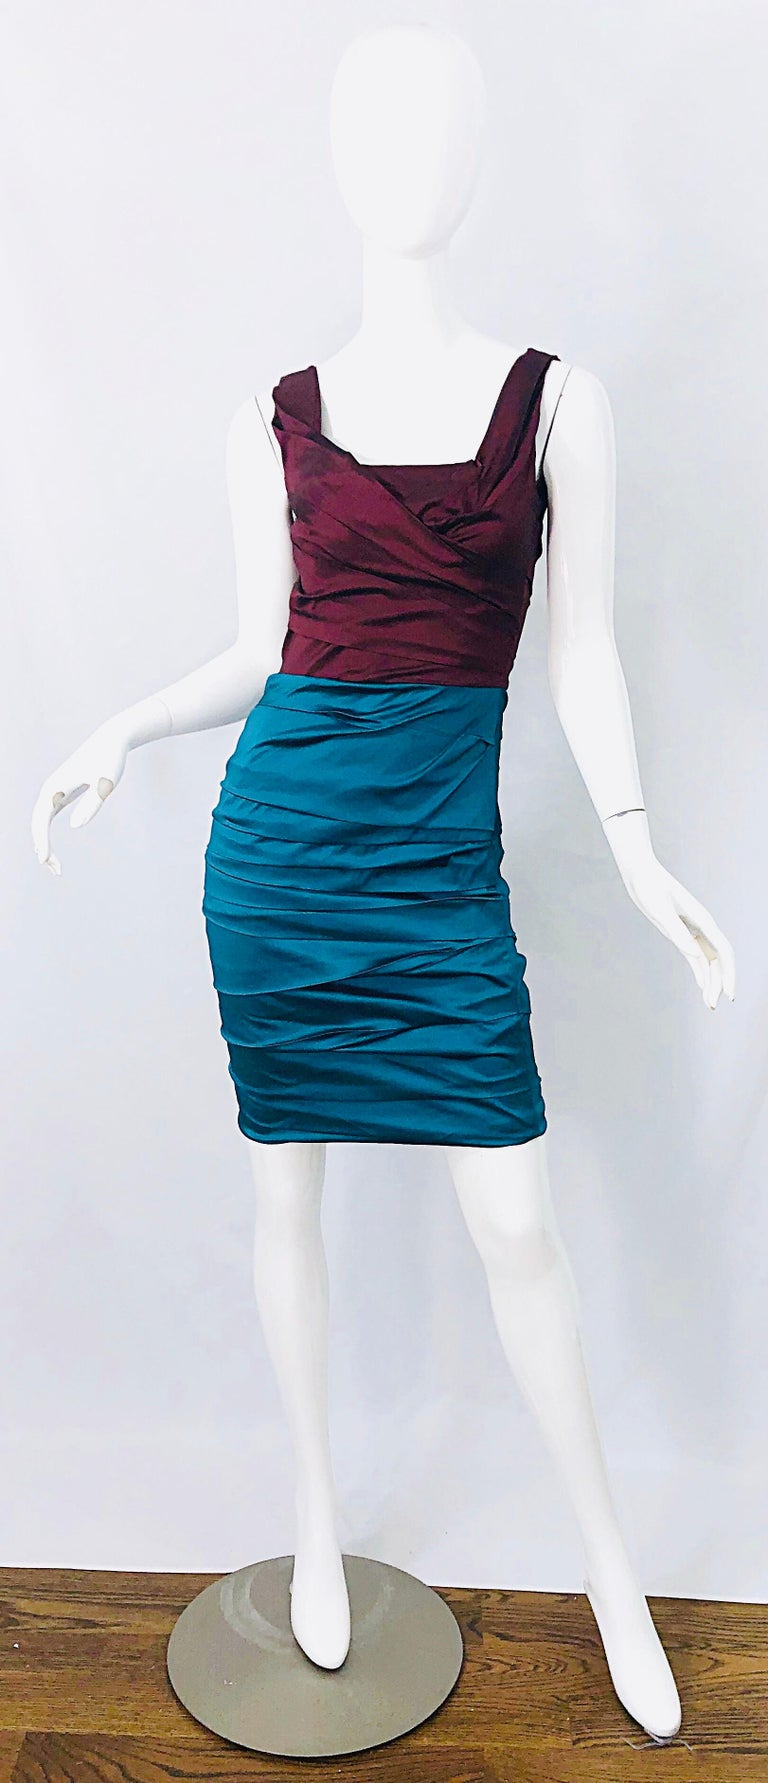 Sexy late 90s brand new DOLCE & GABBANA burgundy / maroon and turquoise blue silk ruched sleeveless dress ! This beauty reminds me of